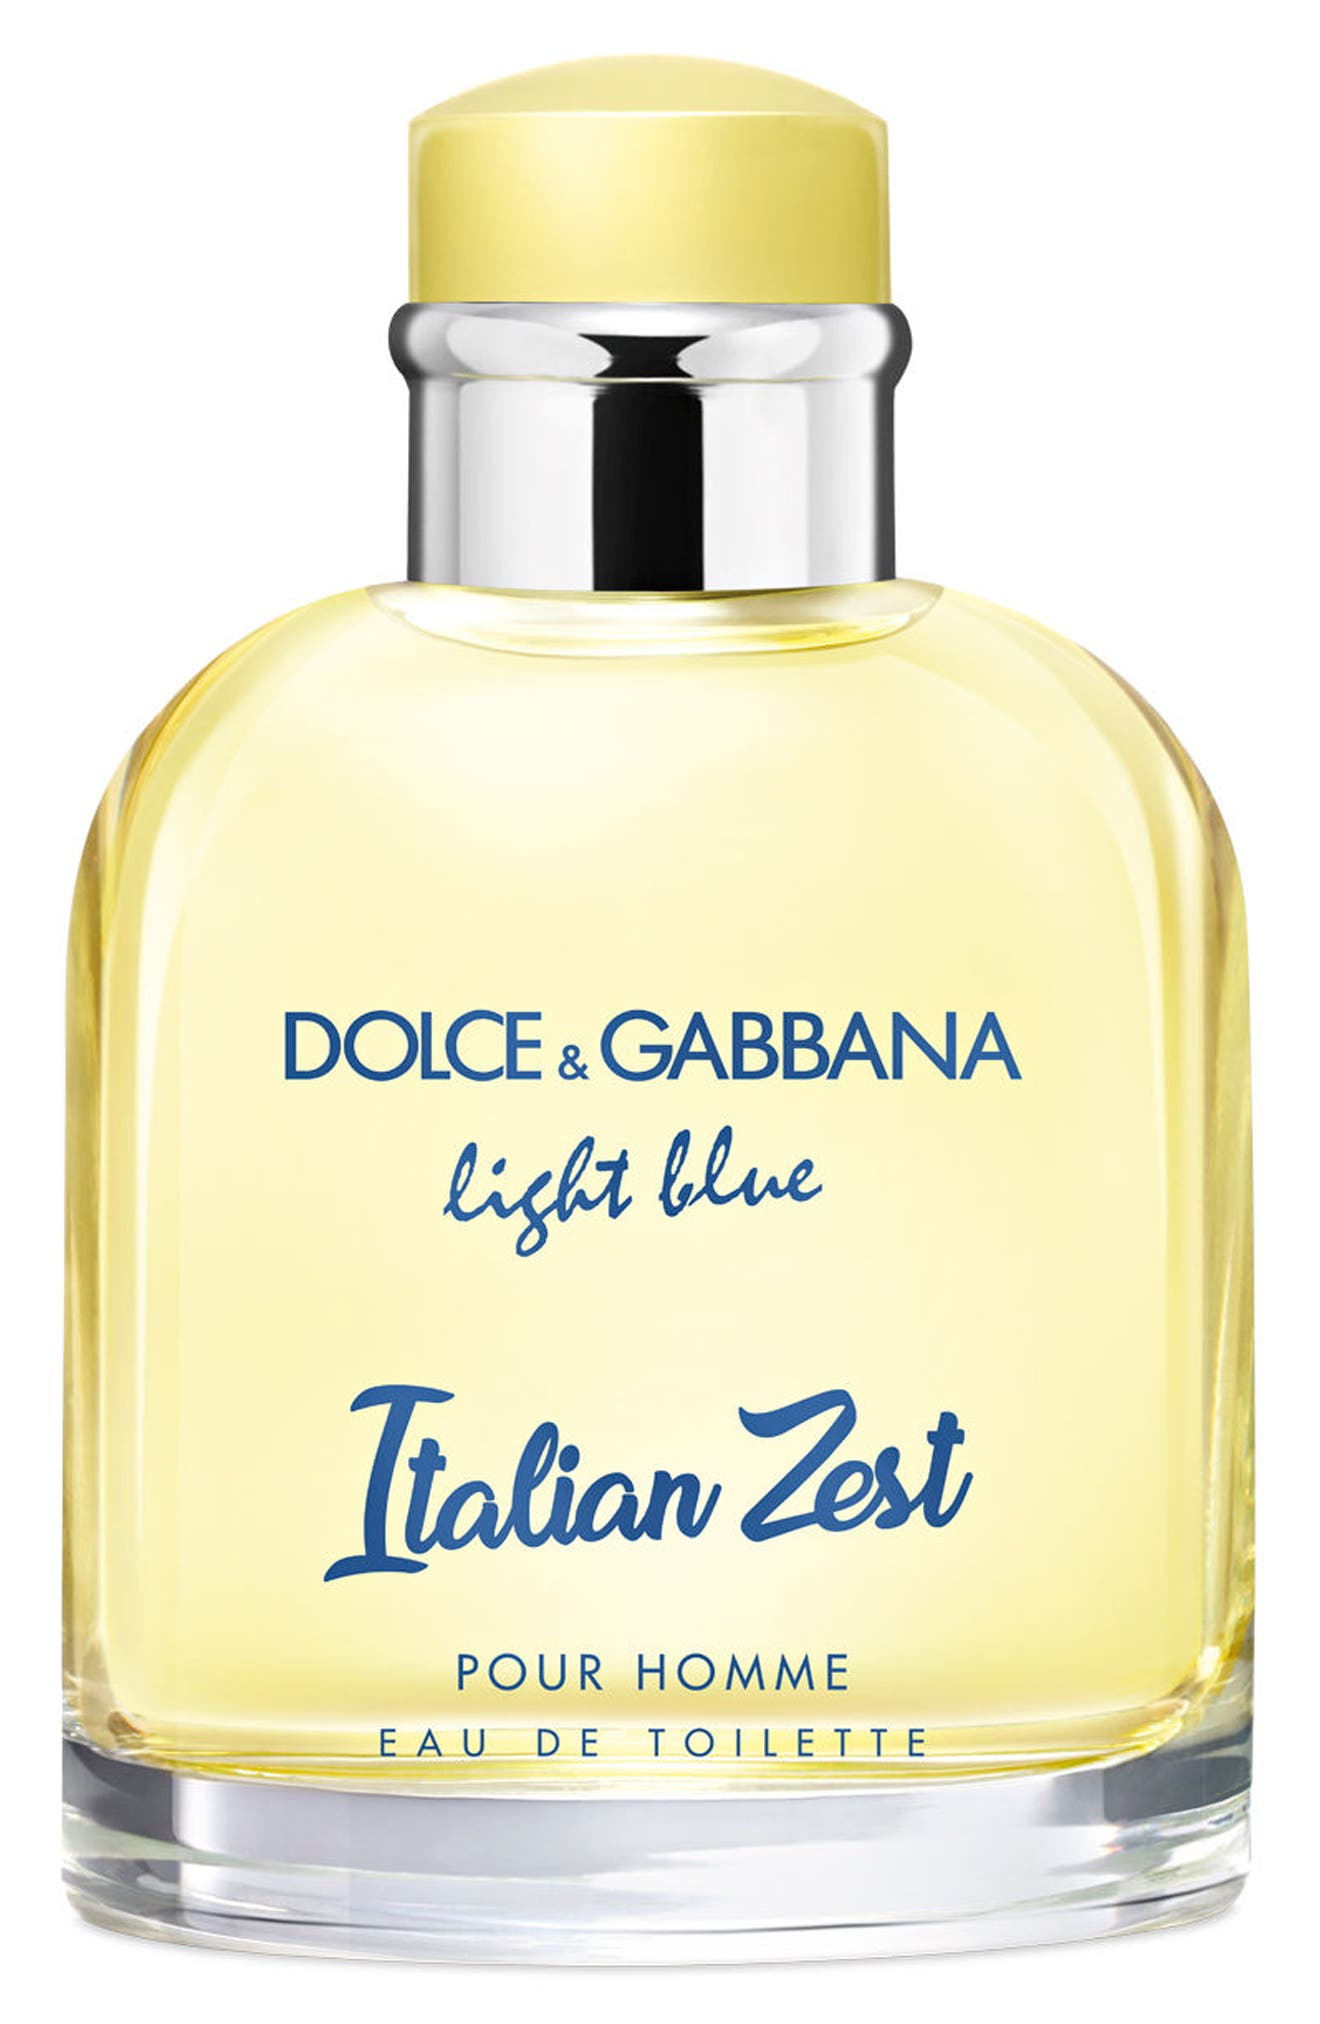 Dolce&Gabbana Light Blue Italian Zest pour Homme Eau de Toilette,                         Main,                         color, No Color